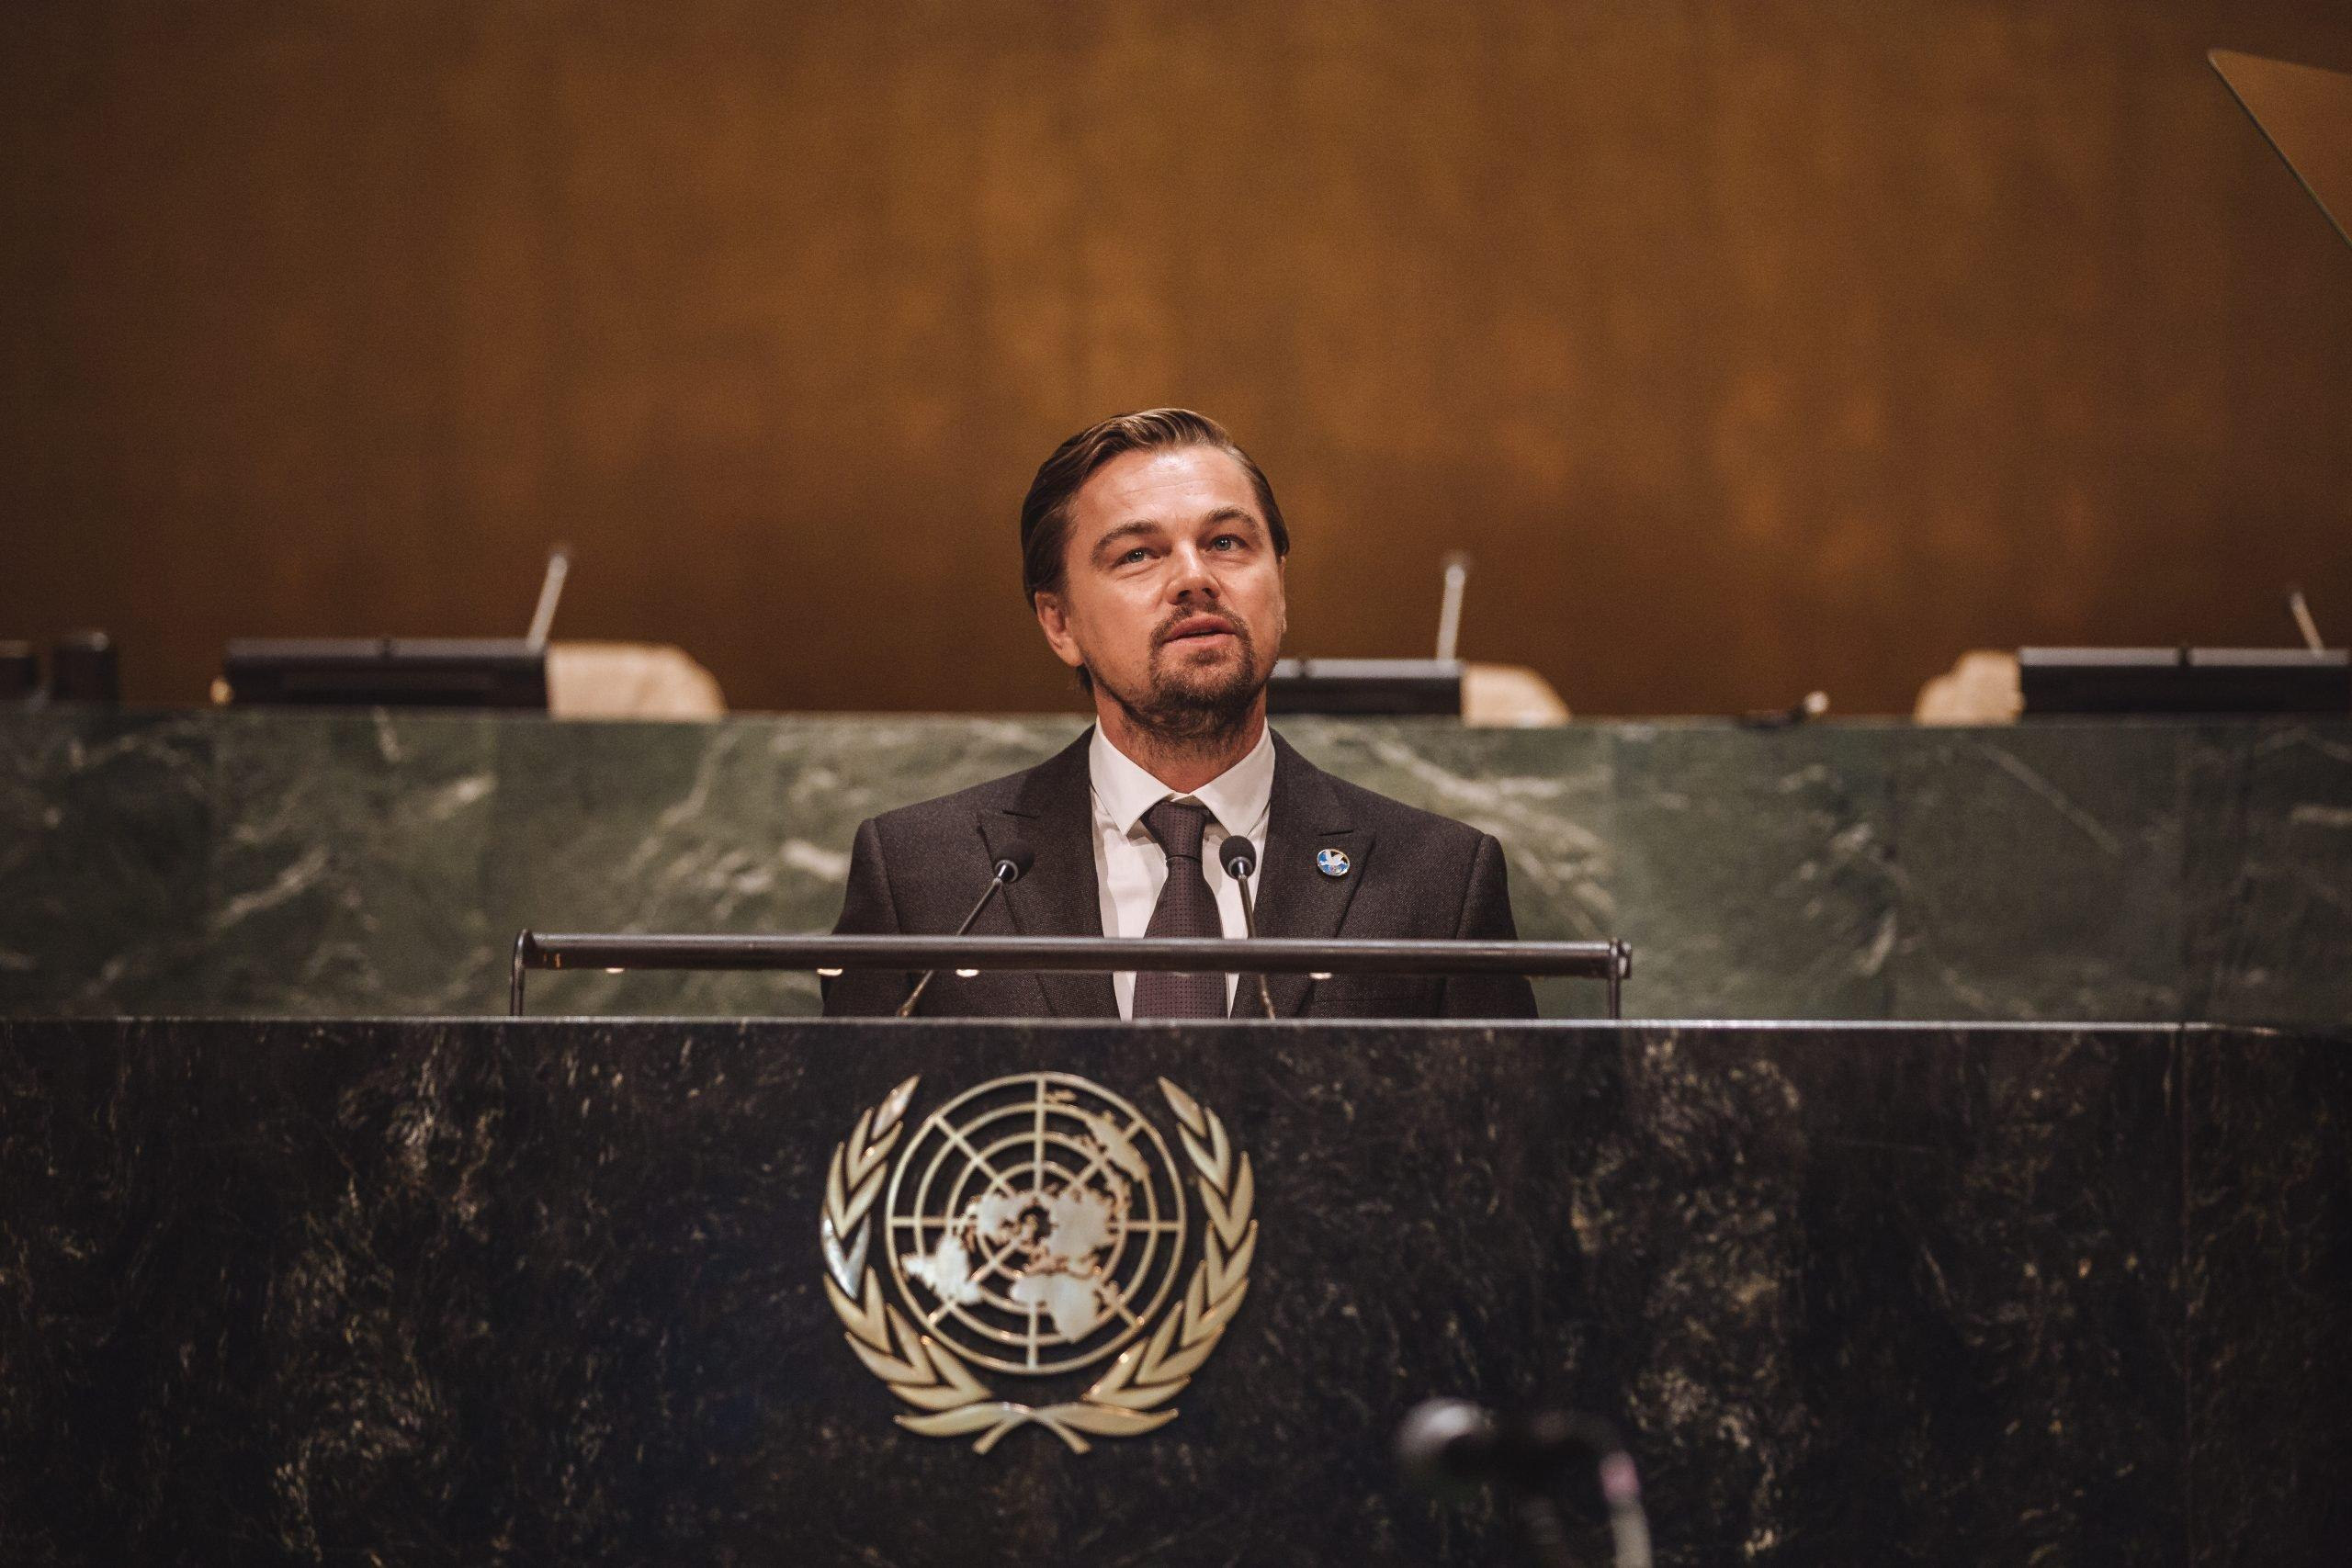 Leonardo DiCaprio urges America's new leader to jump on environmental issues